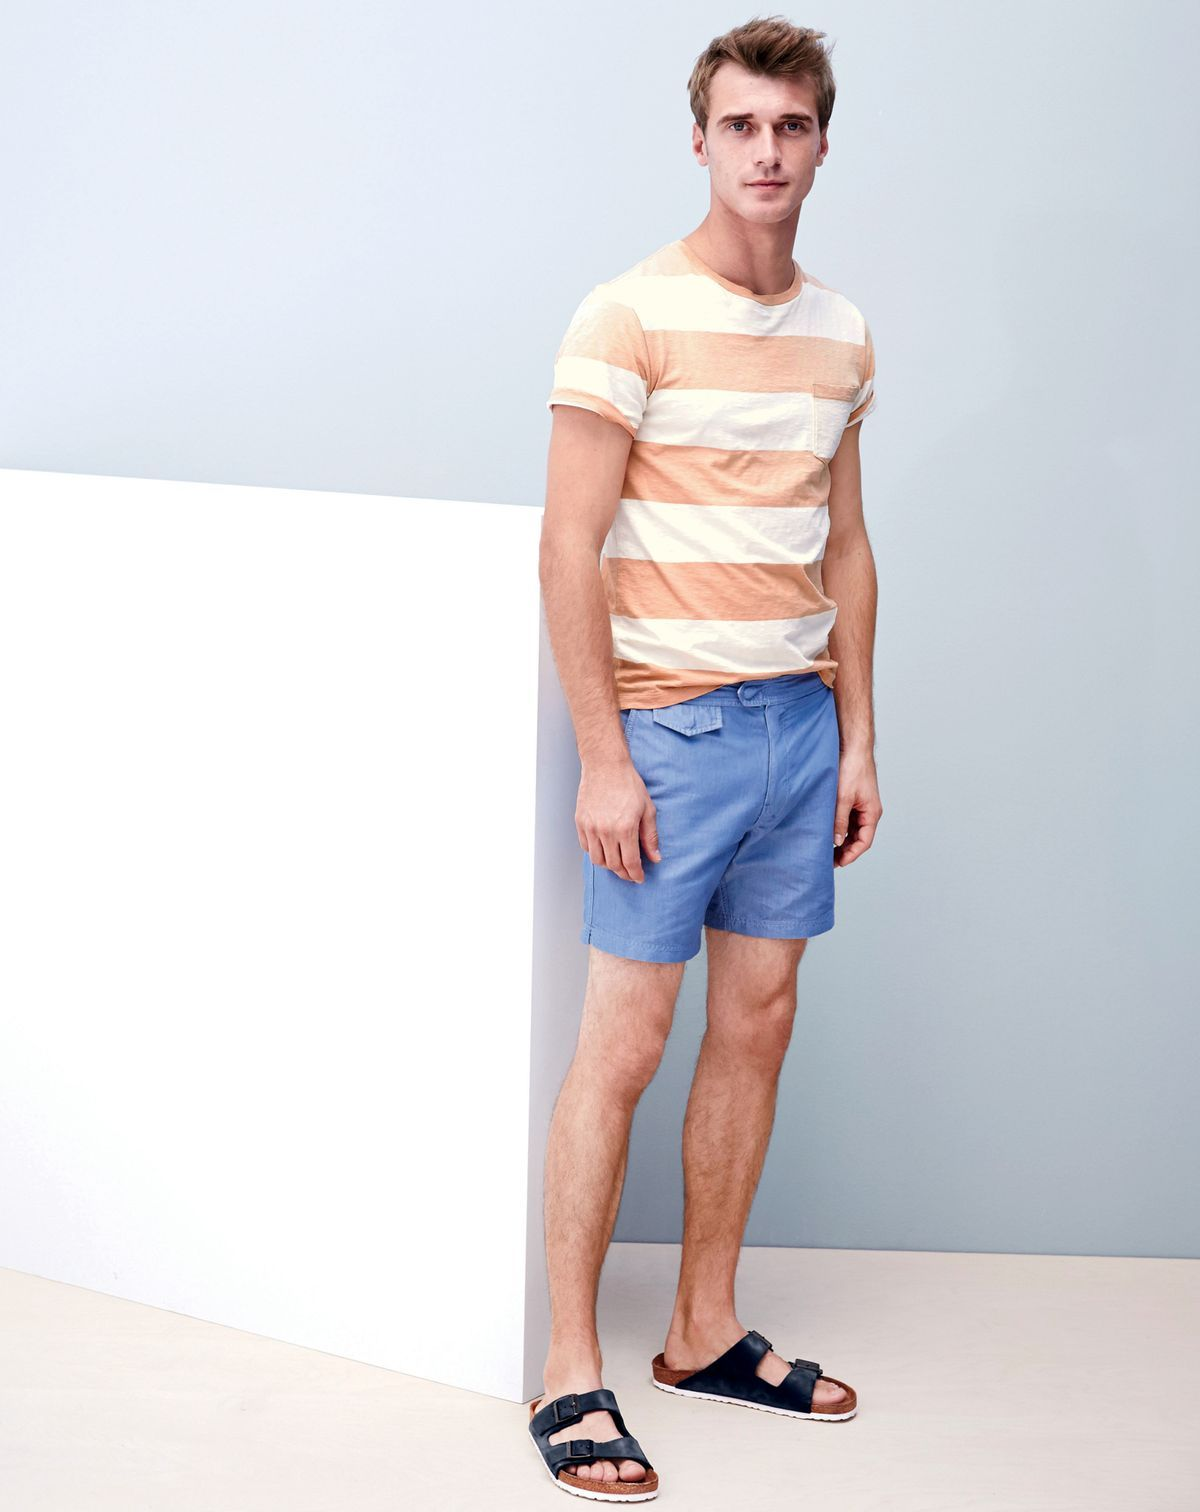 0d86786774 APR '15 Style Guide: J.Crew men's sun-faded pocket in surf stripe tee, 6.5